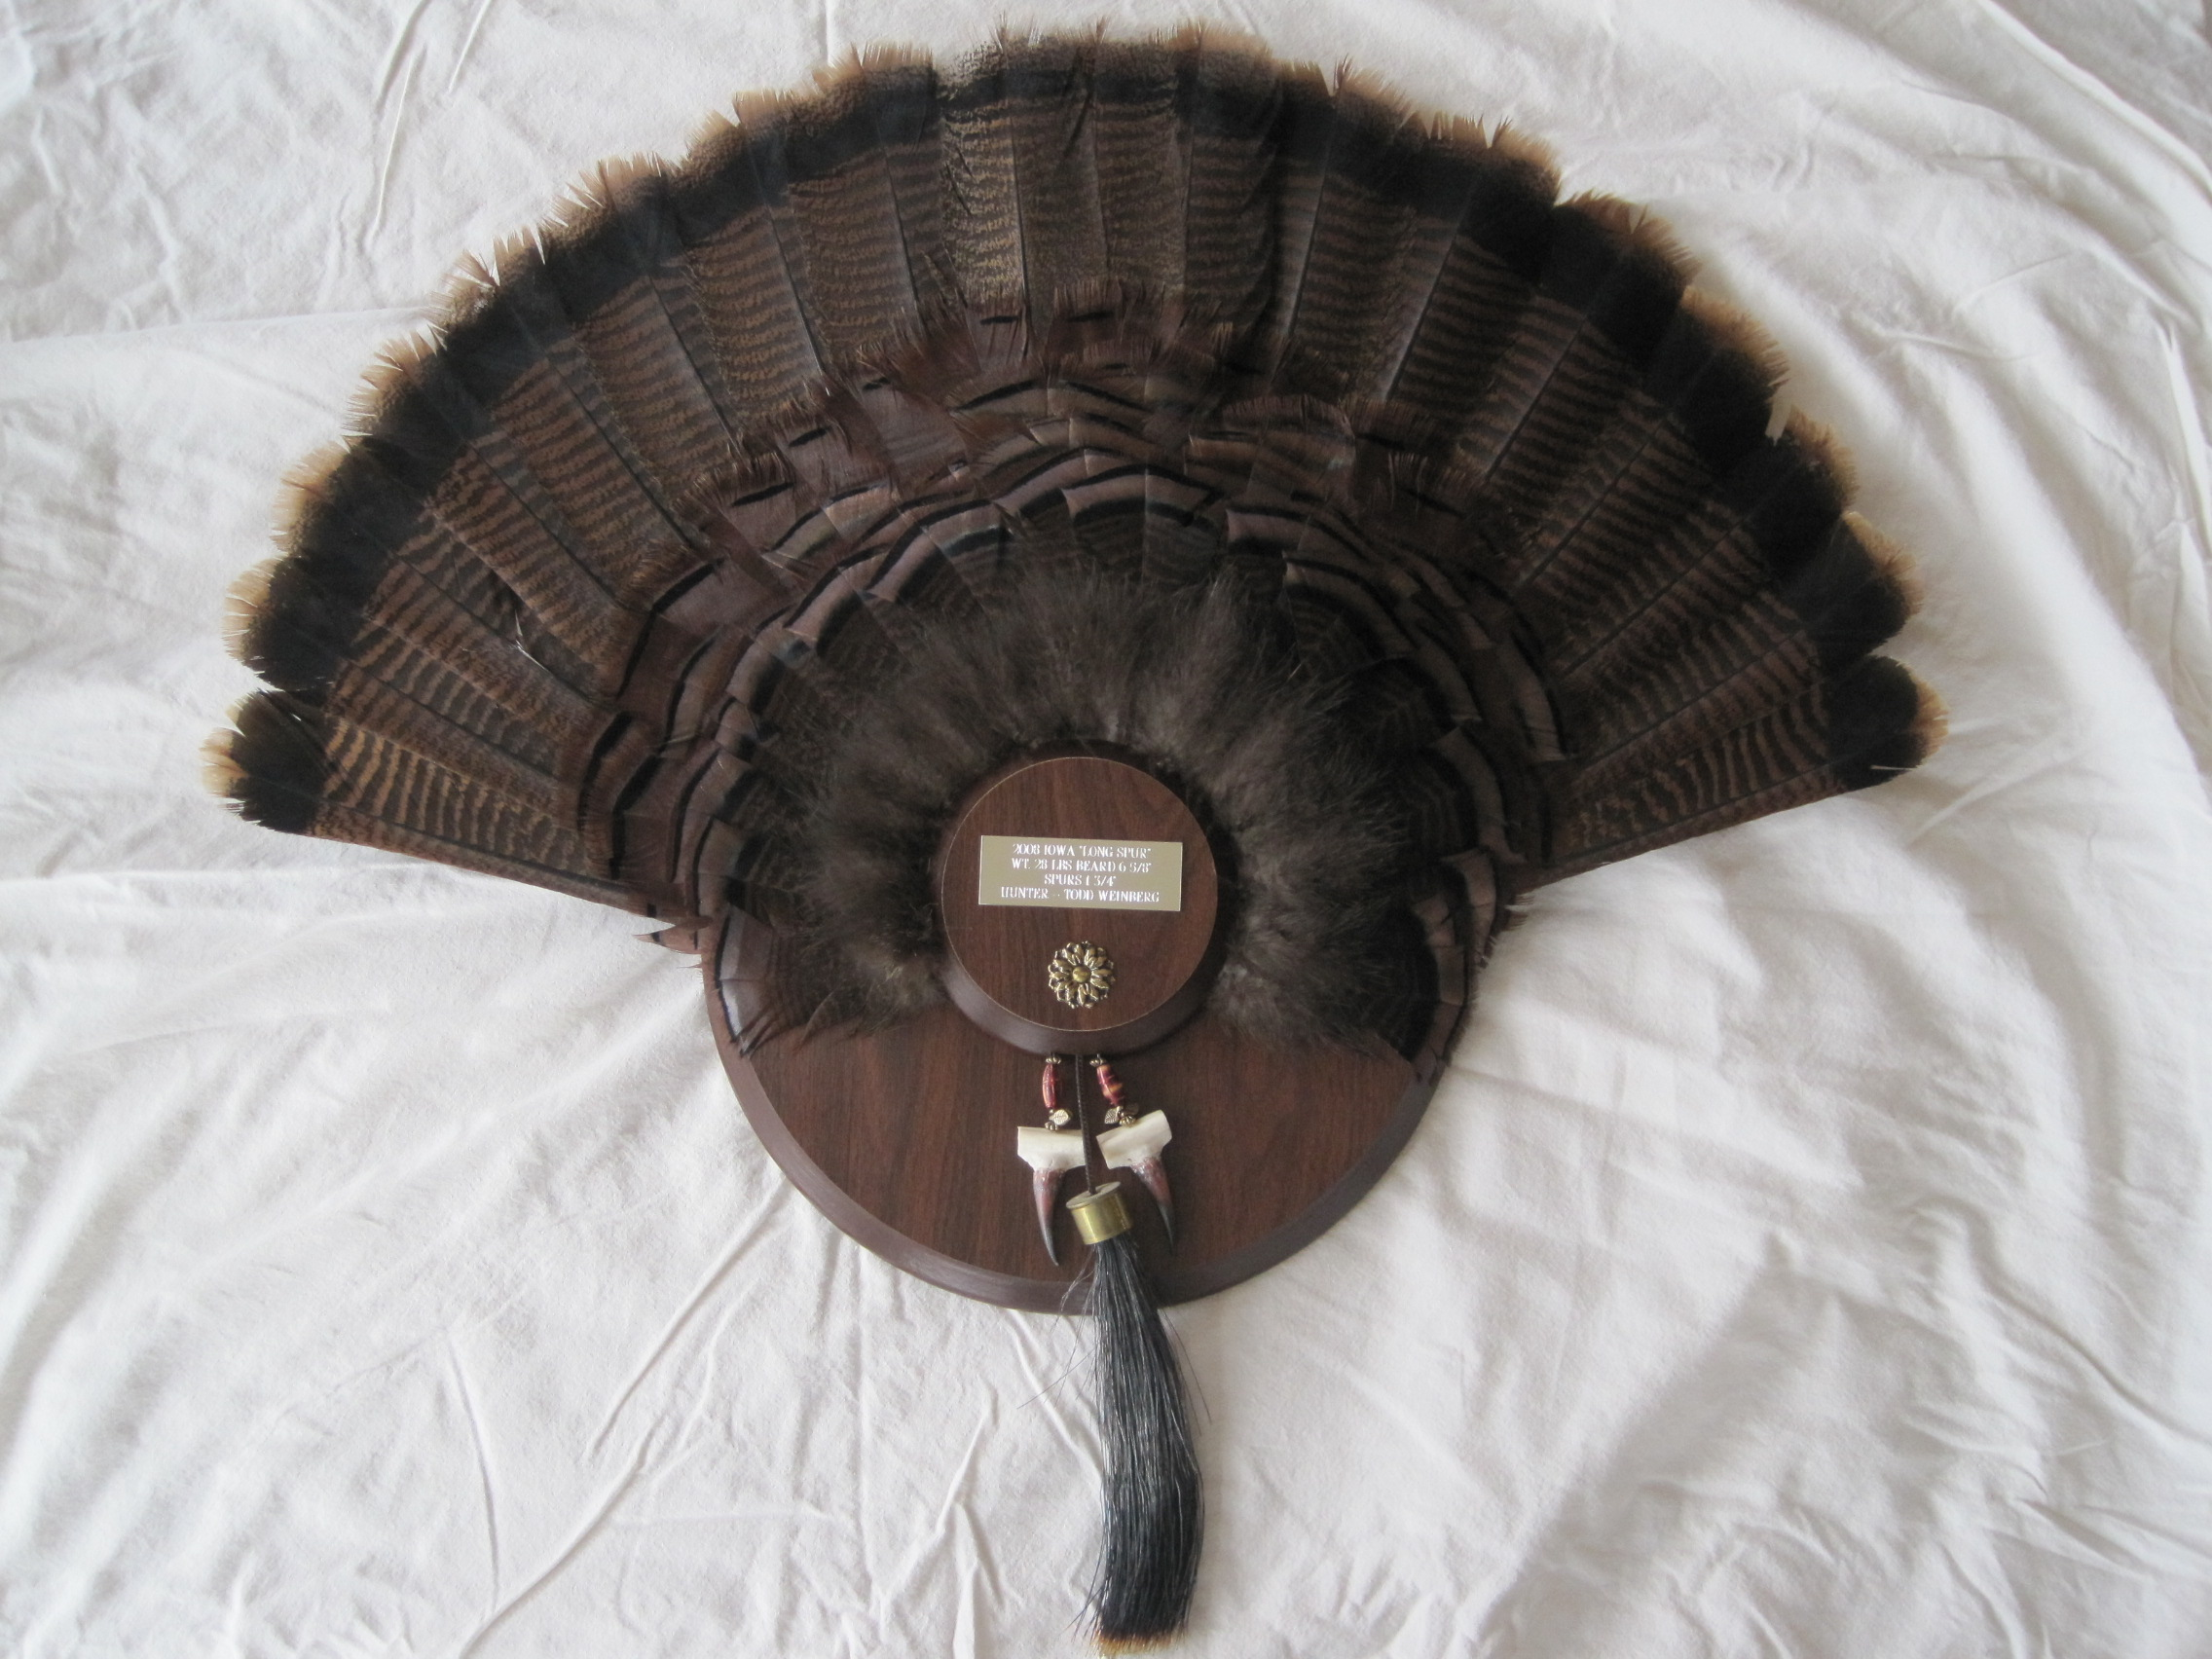 Turkey Tail Taxidermy as well The Butterfly Expandable Round Glass Dining Table moreover 20688479516892396 likewise Getting A Good Whitetail Deer Mount together with Room Escape Live Action Virtual Reality. on taxidermy shop ideas